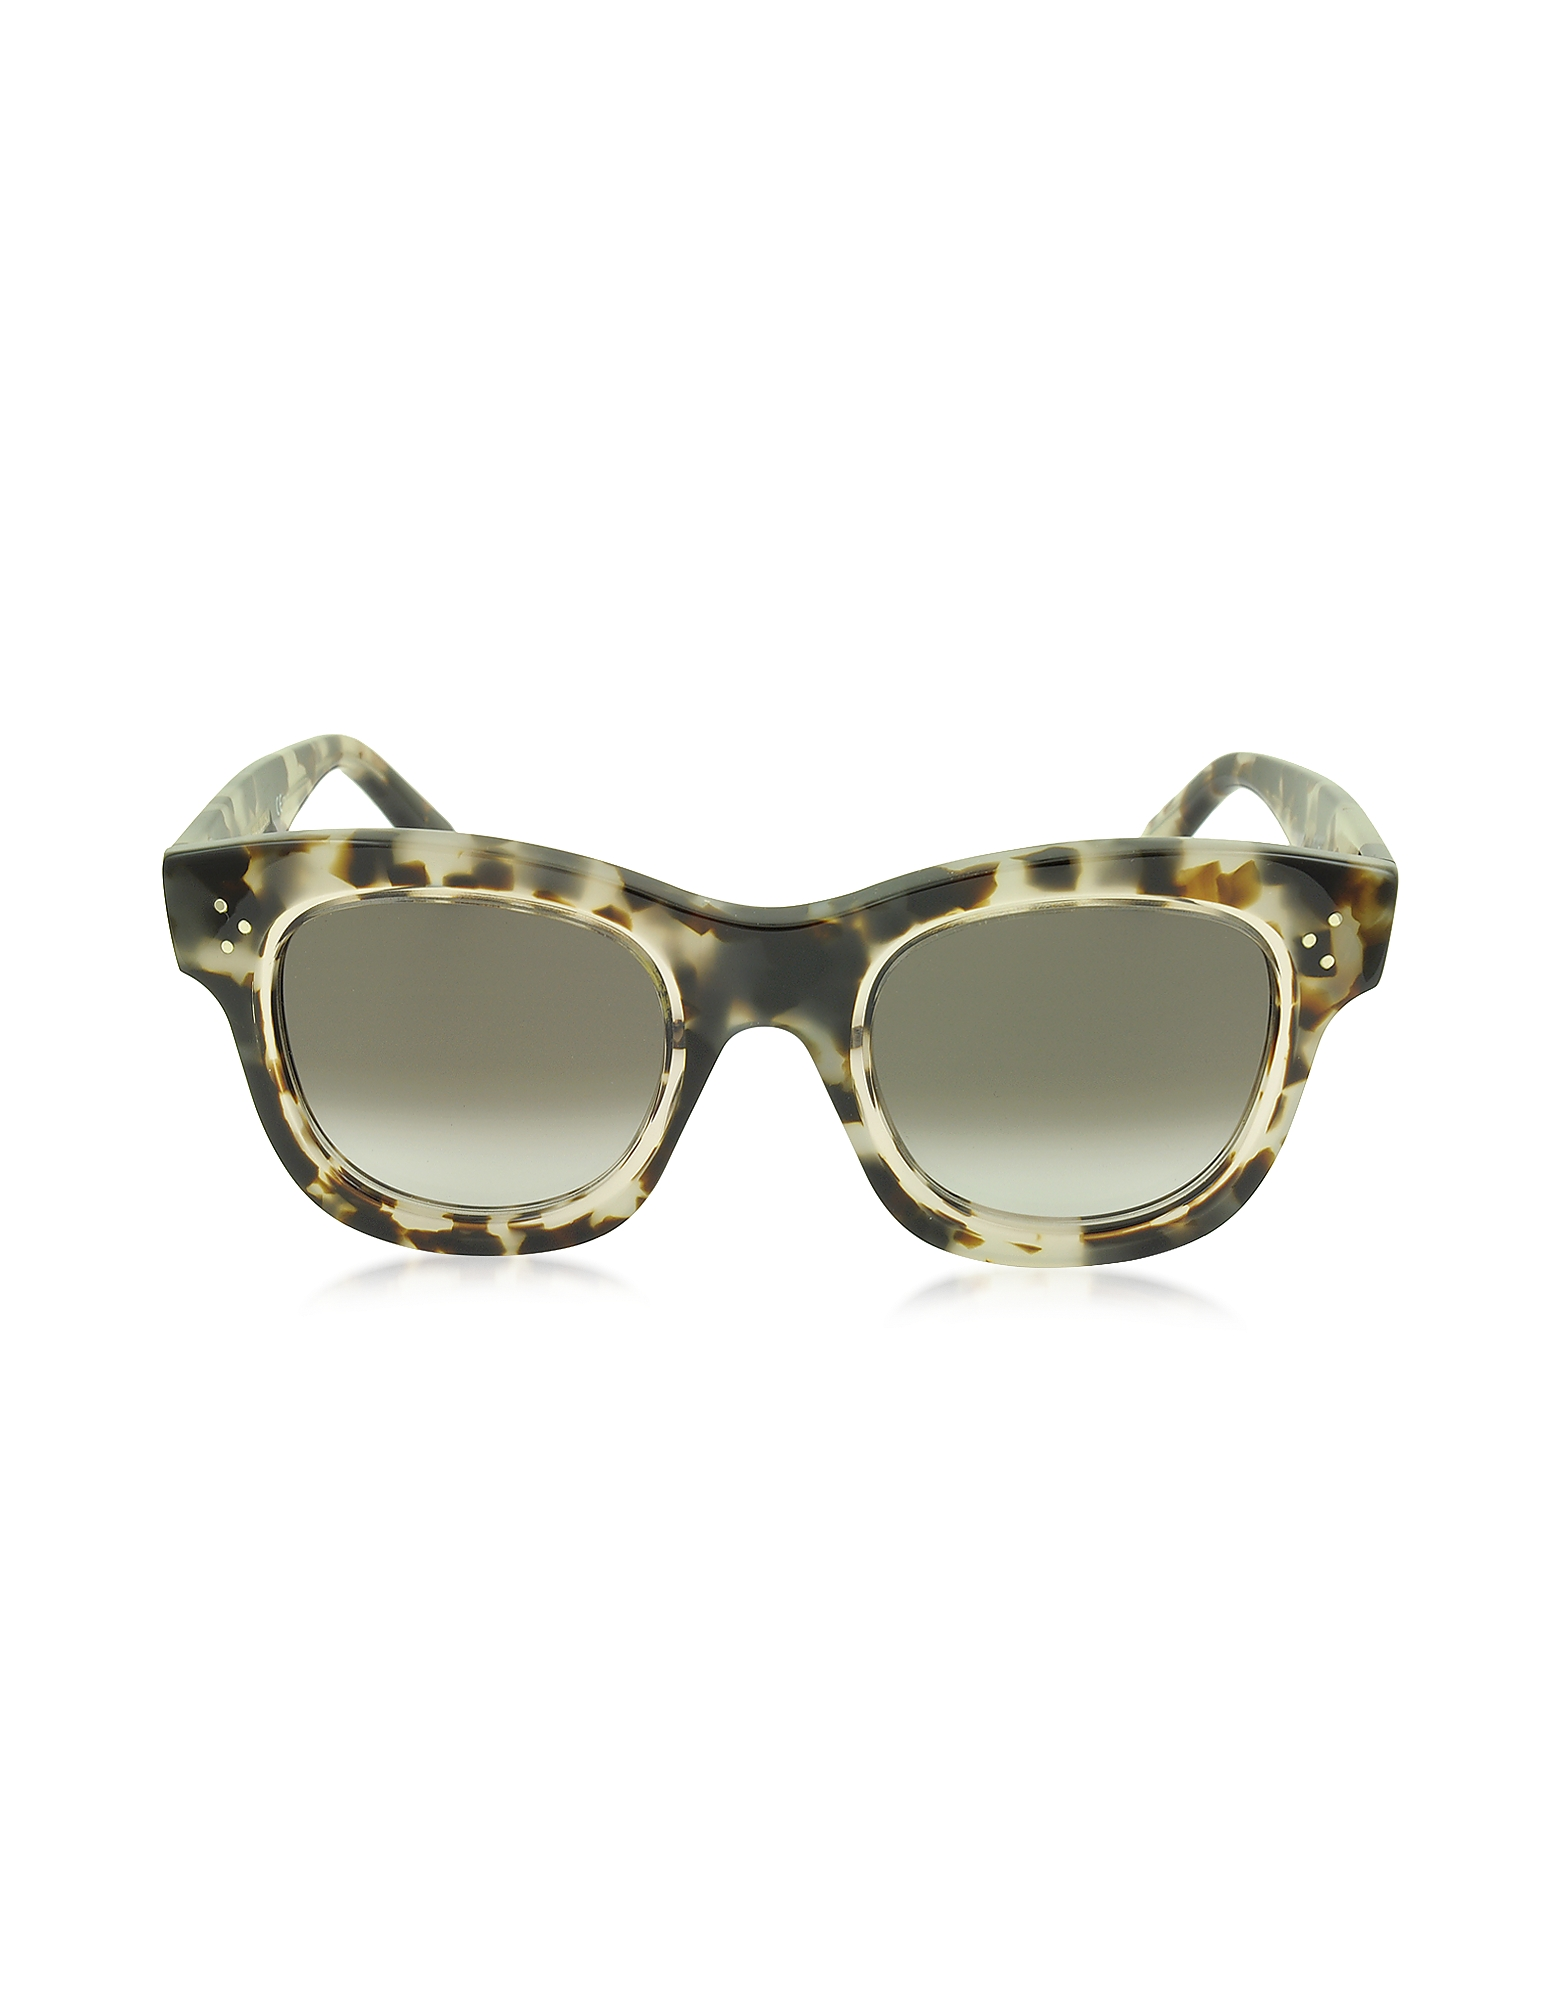 Céline Sunglasses, HELEN CL 41397/S T7MZ3 Havana Acetate Cat Eye Women's Sunglasses